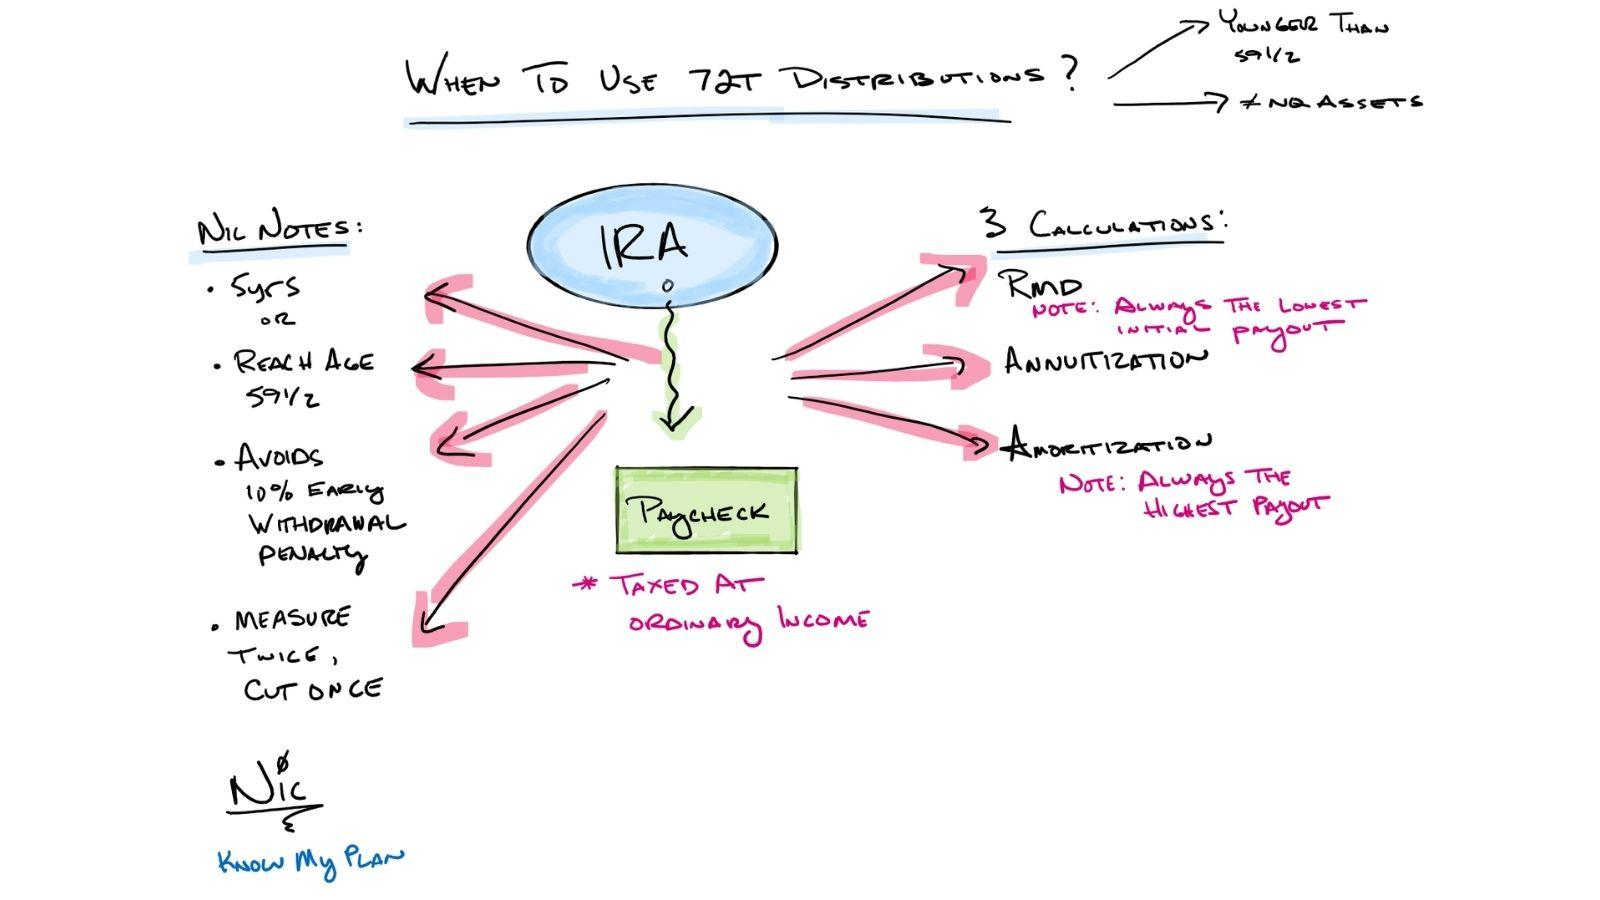 When to Use 72T Distributions  Thumbnail